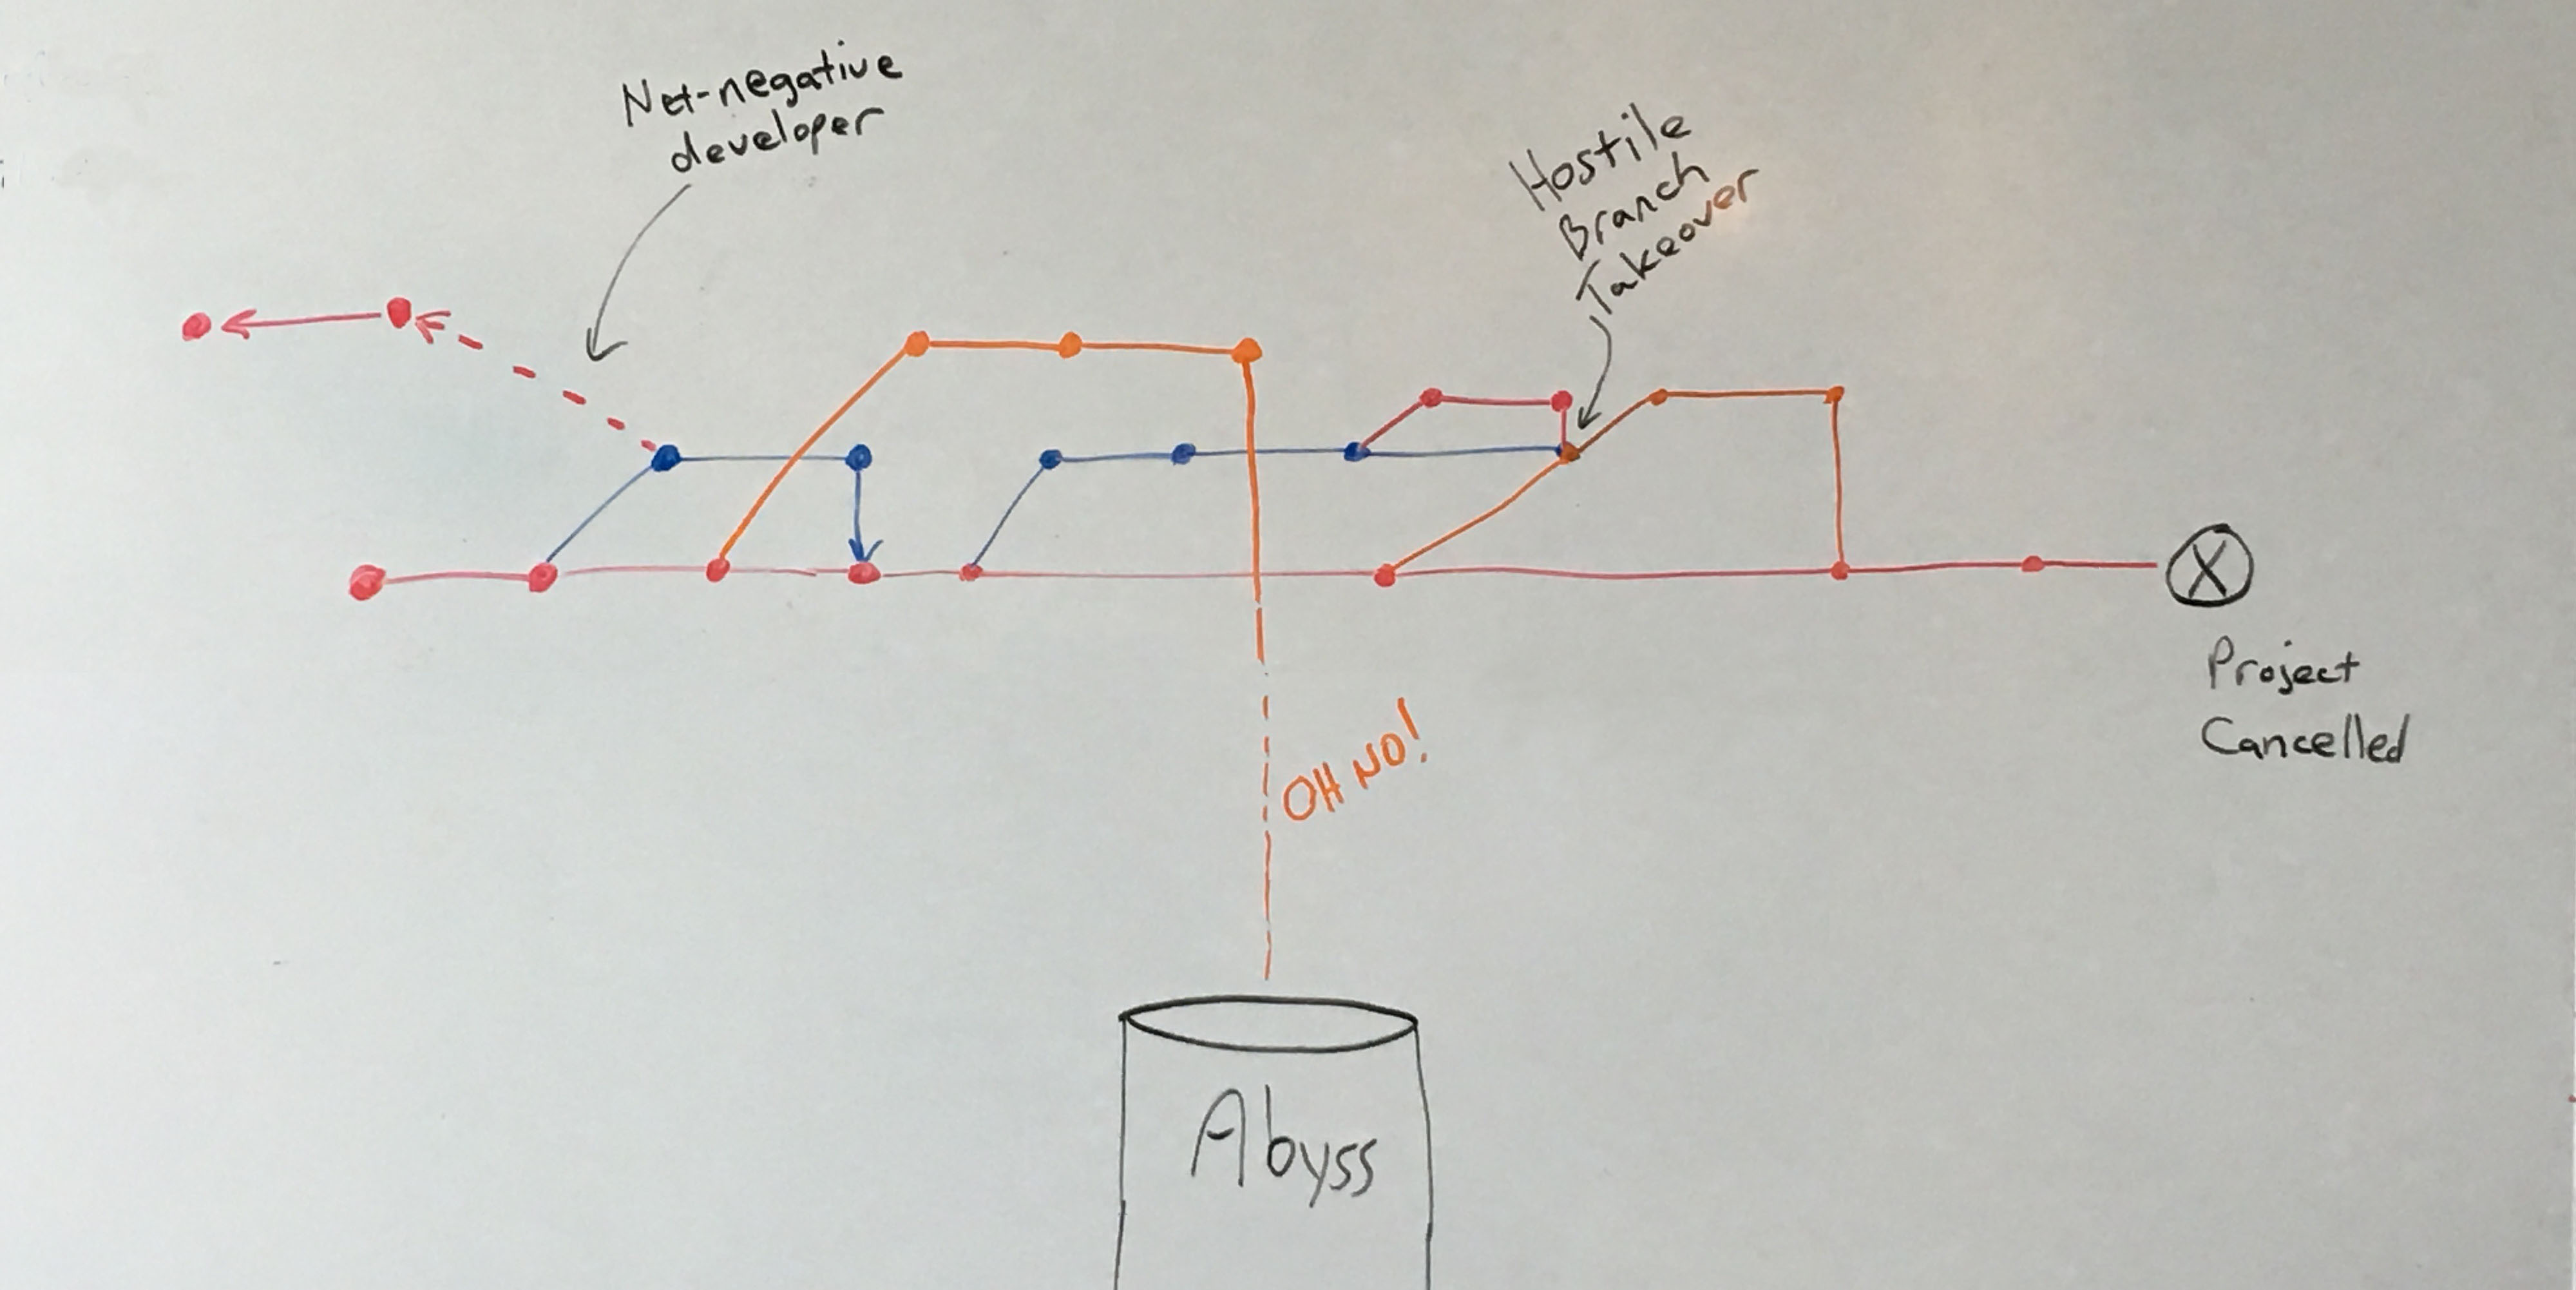 Whiteboard illustration of a parody git branching strategy